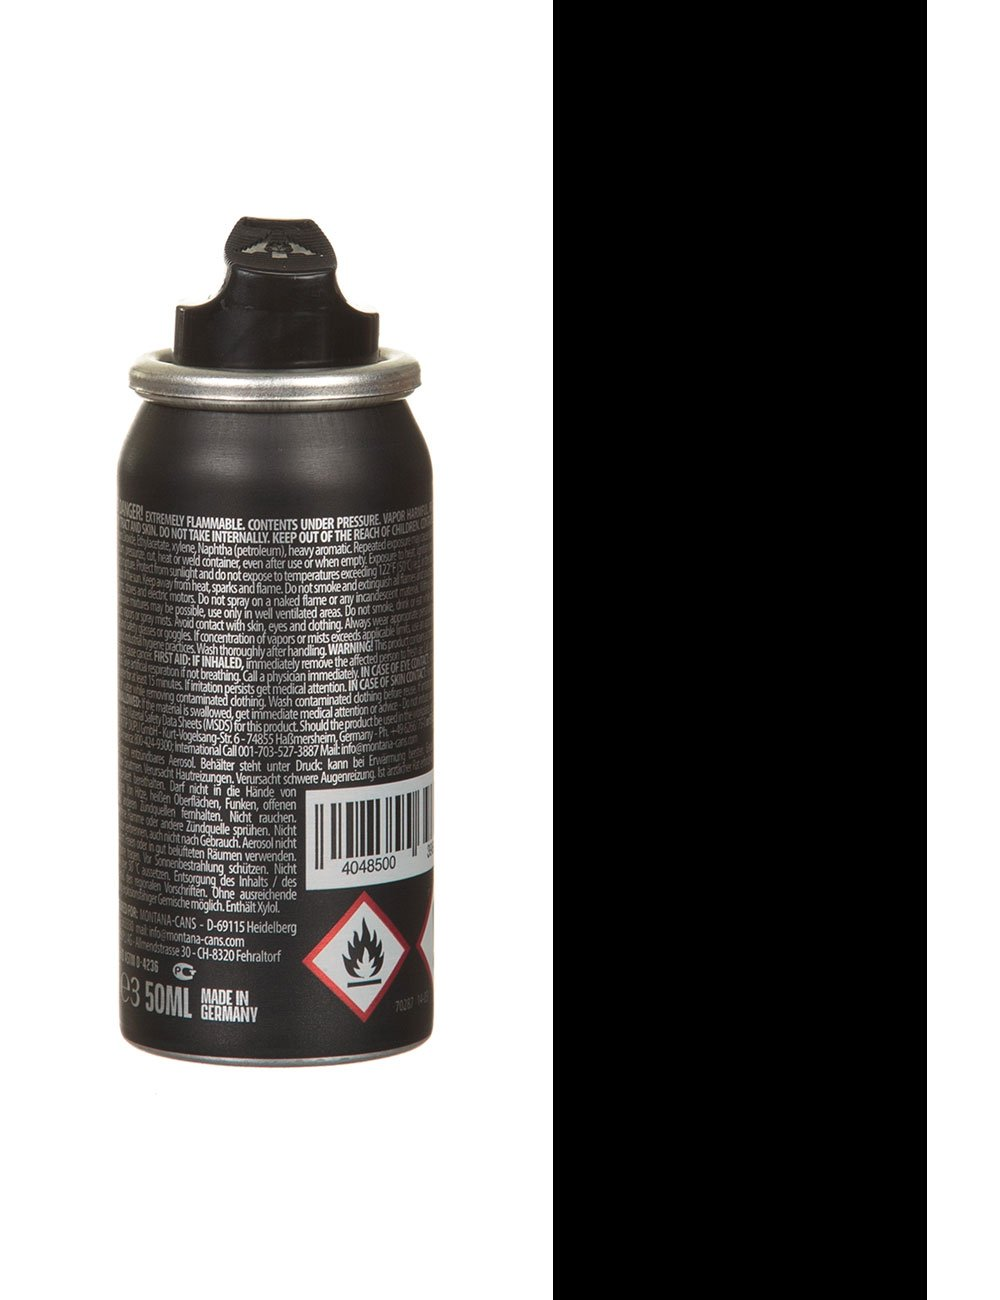 Montana Black Black Spray Paint 50ml Spray Paint Supplies From Iconsume Uk